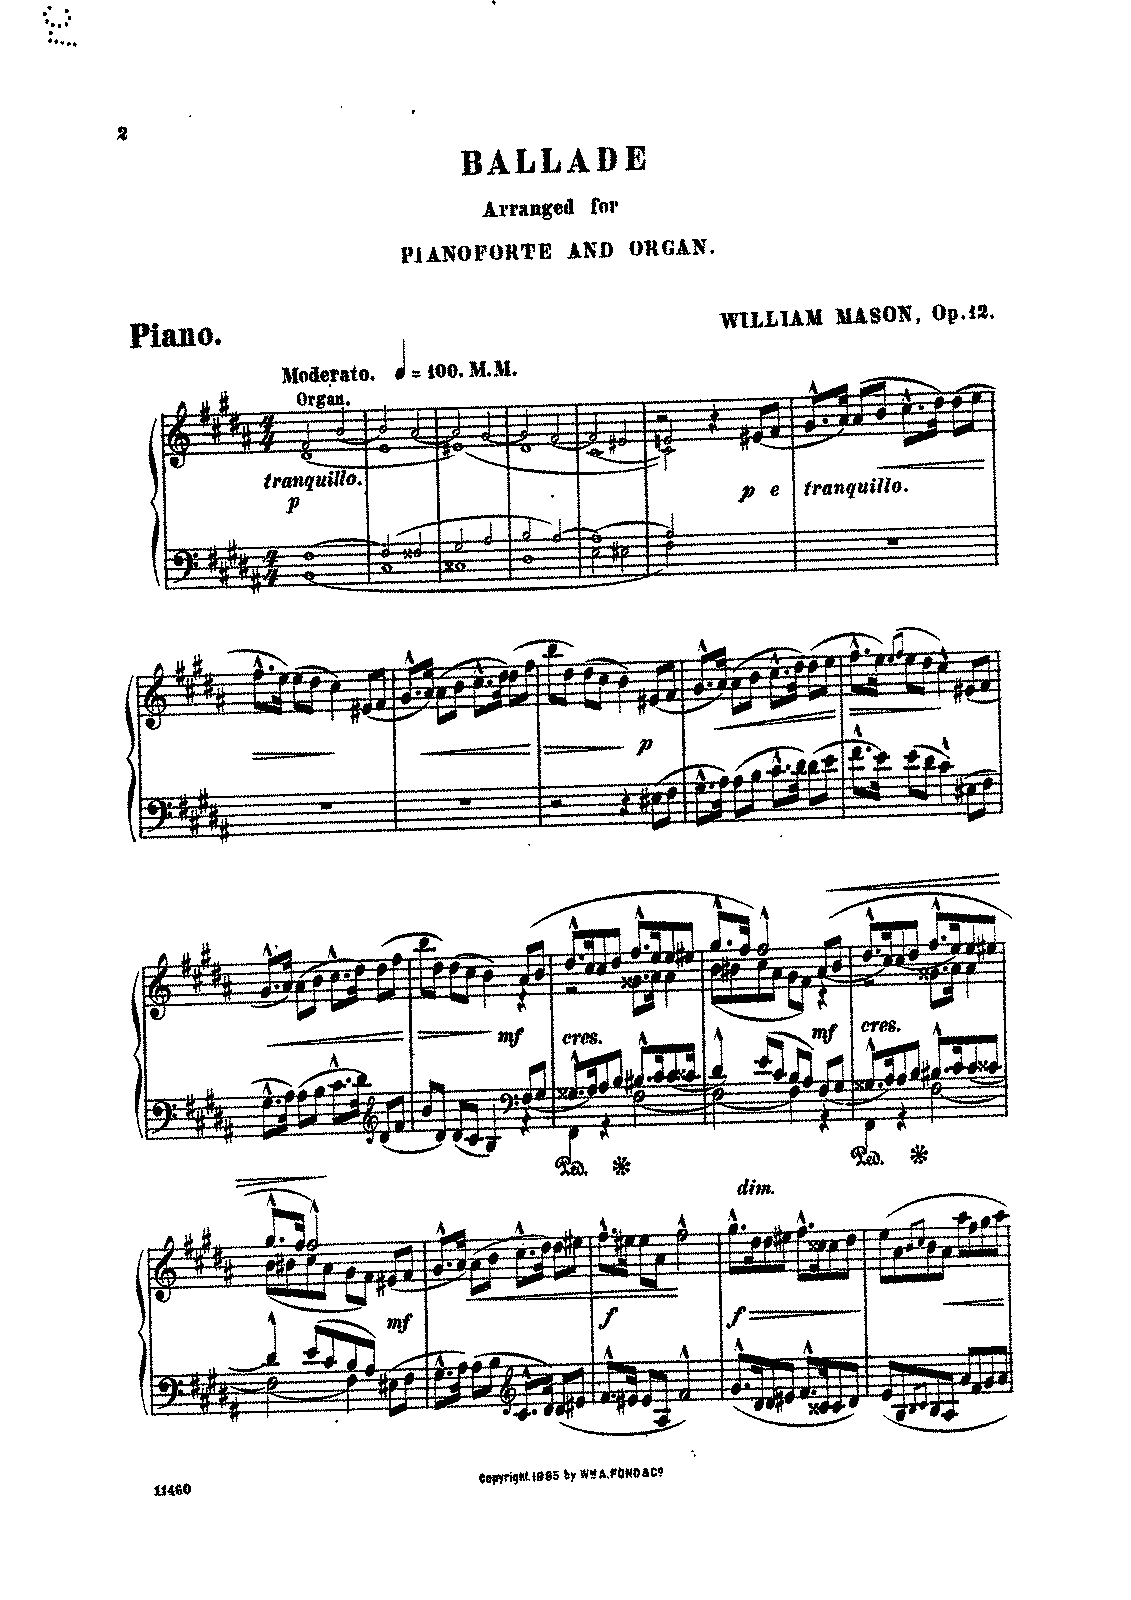 Mason, W. - Op.12 - Ballade for Organ and Piano.pdf